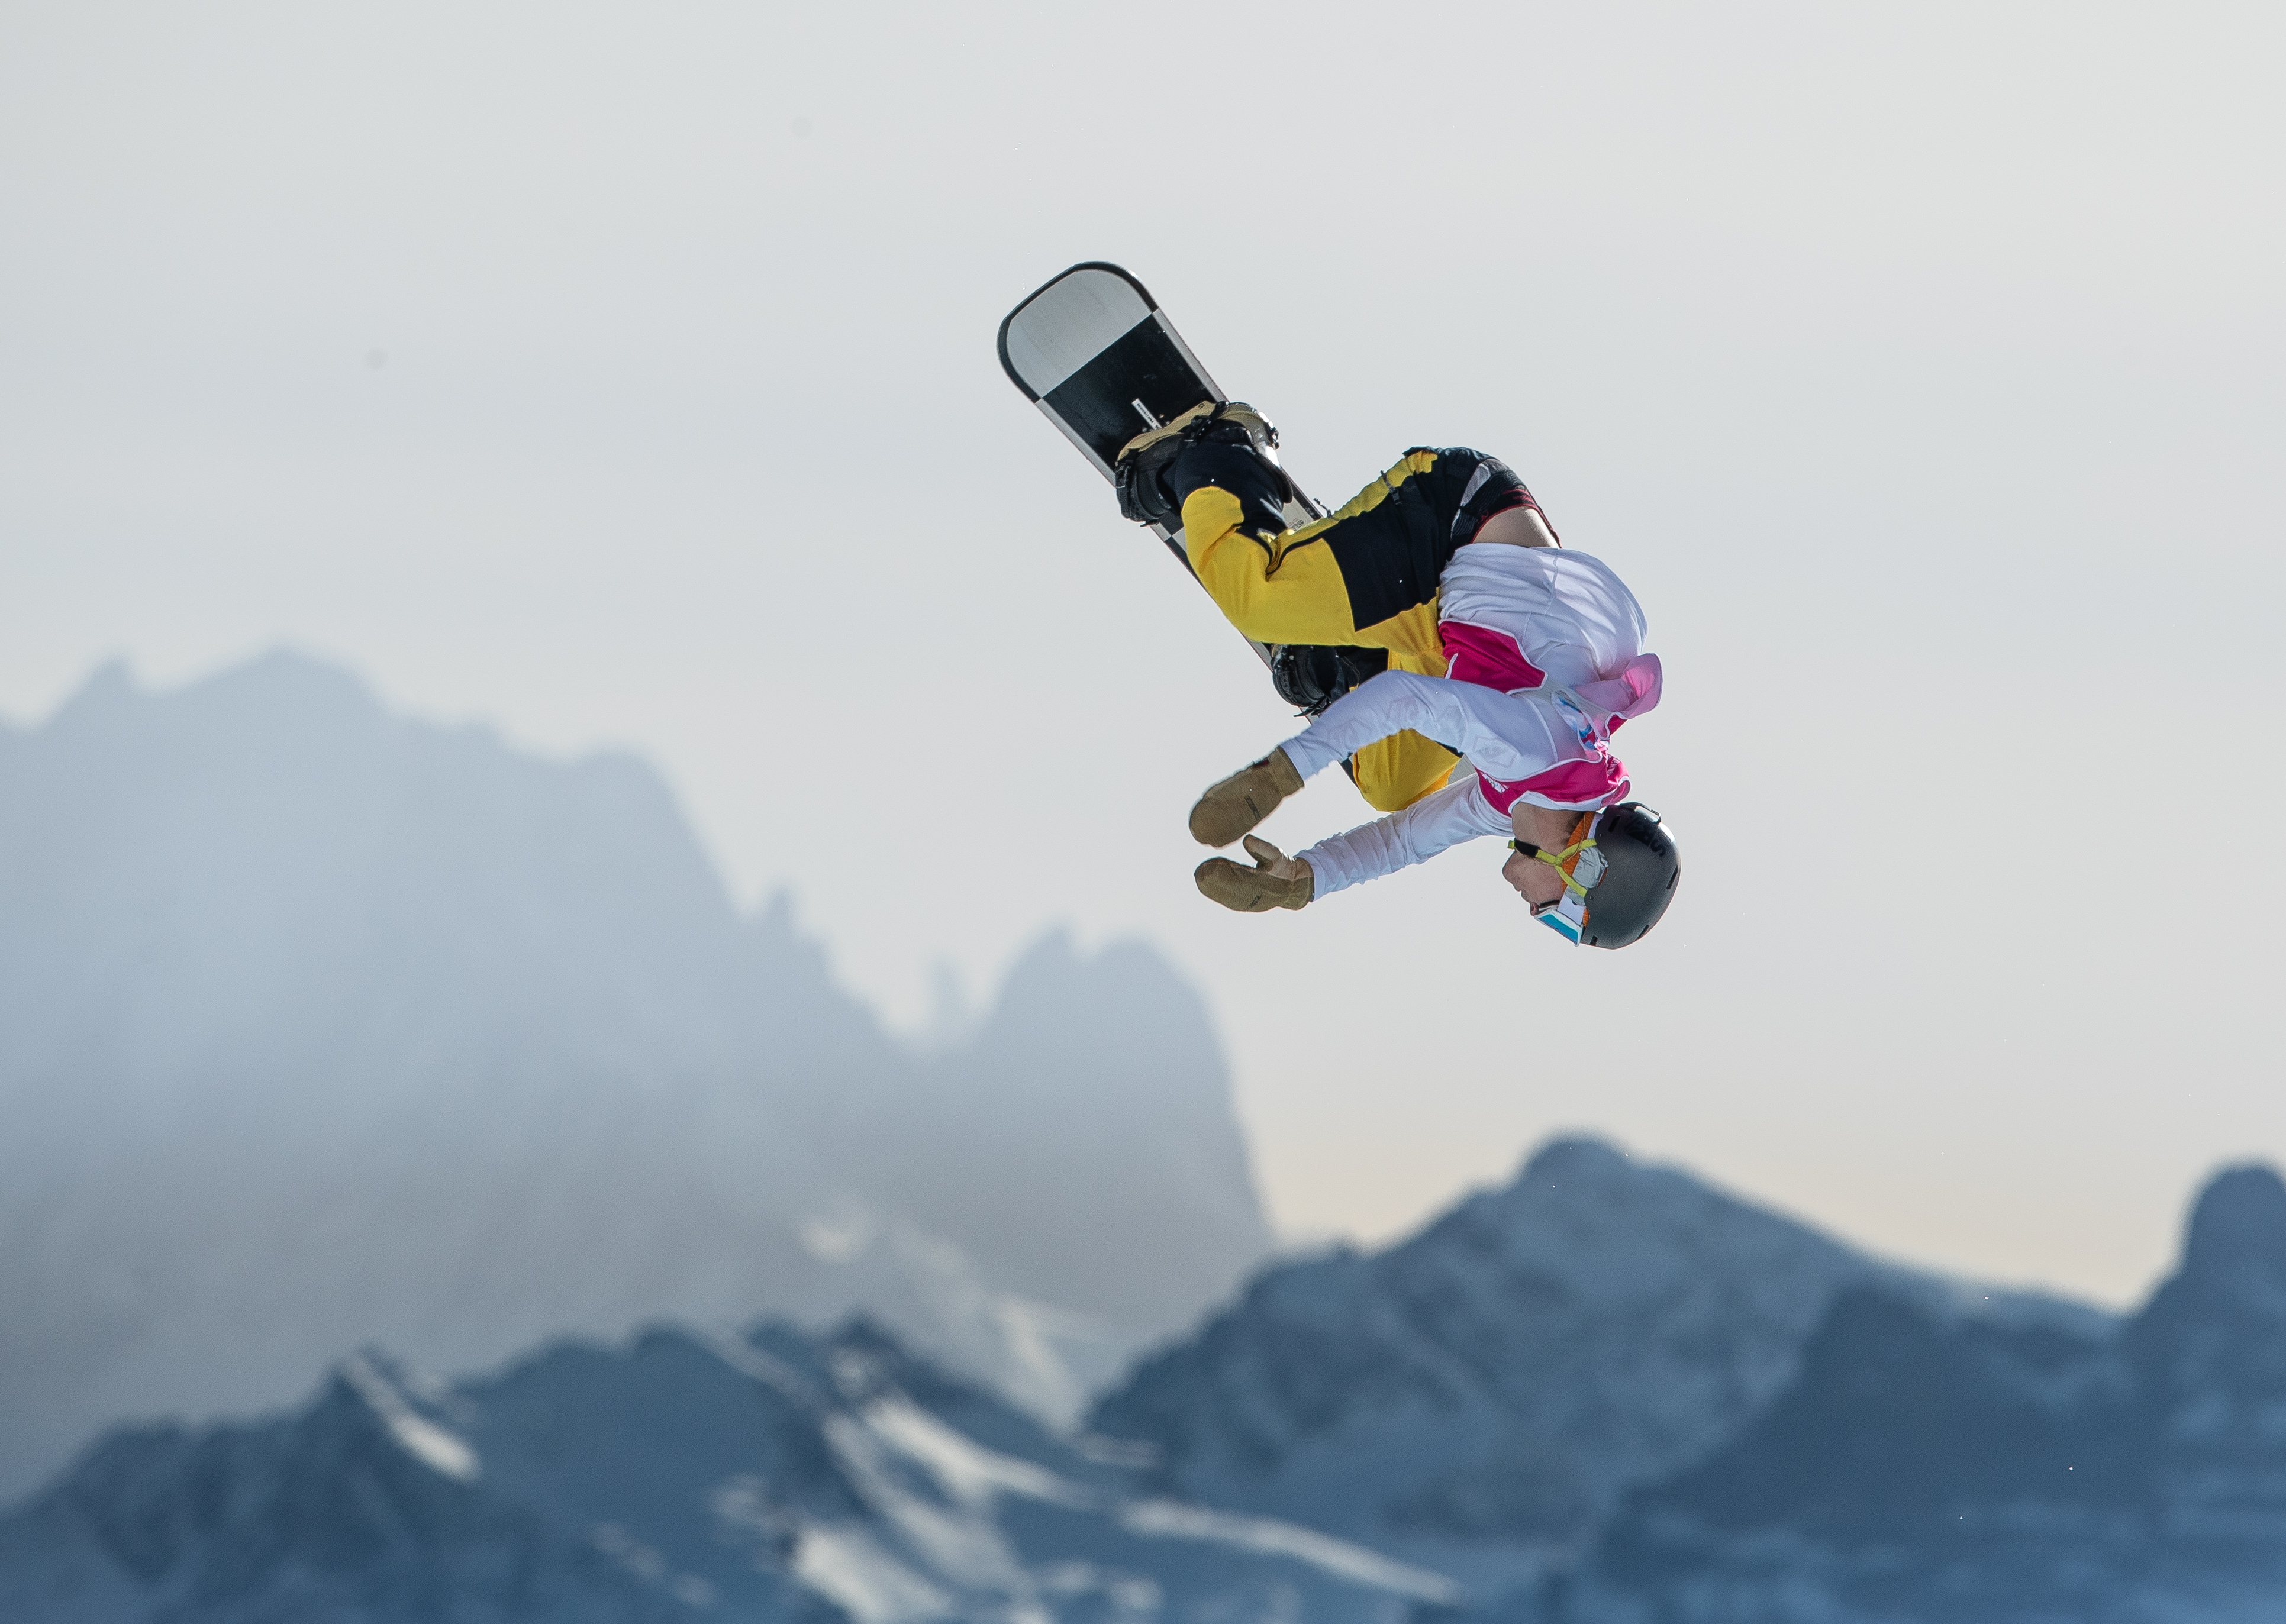 Beijing 2022 Winter Olympics Planning Revealed by Olympic Skier